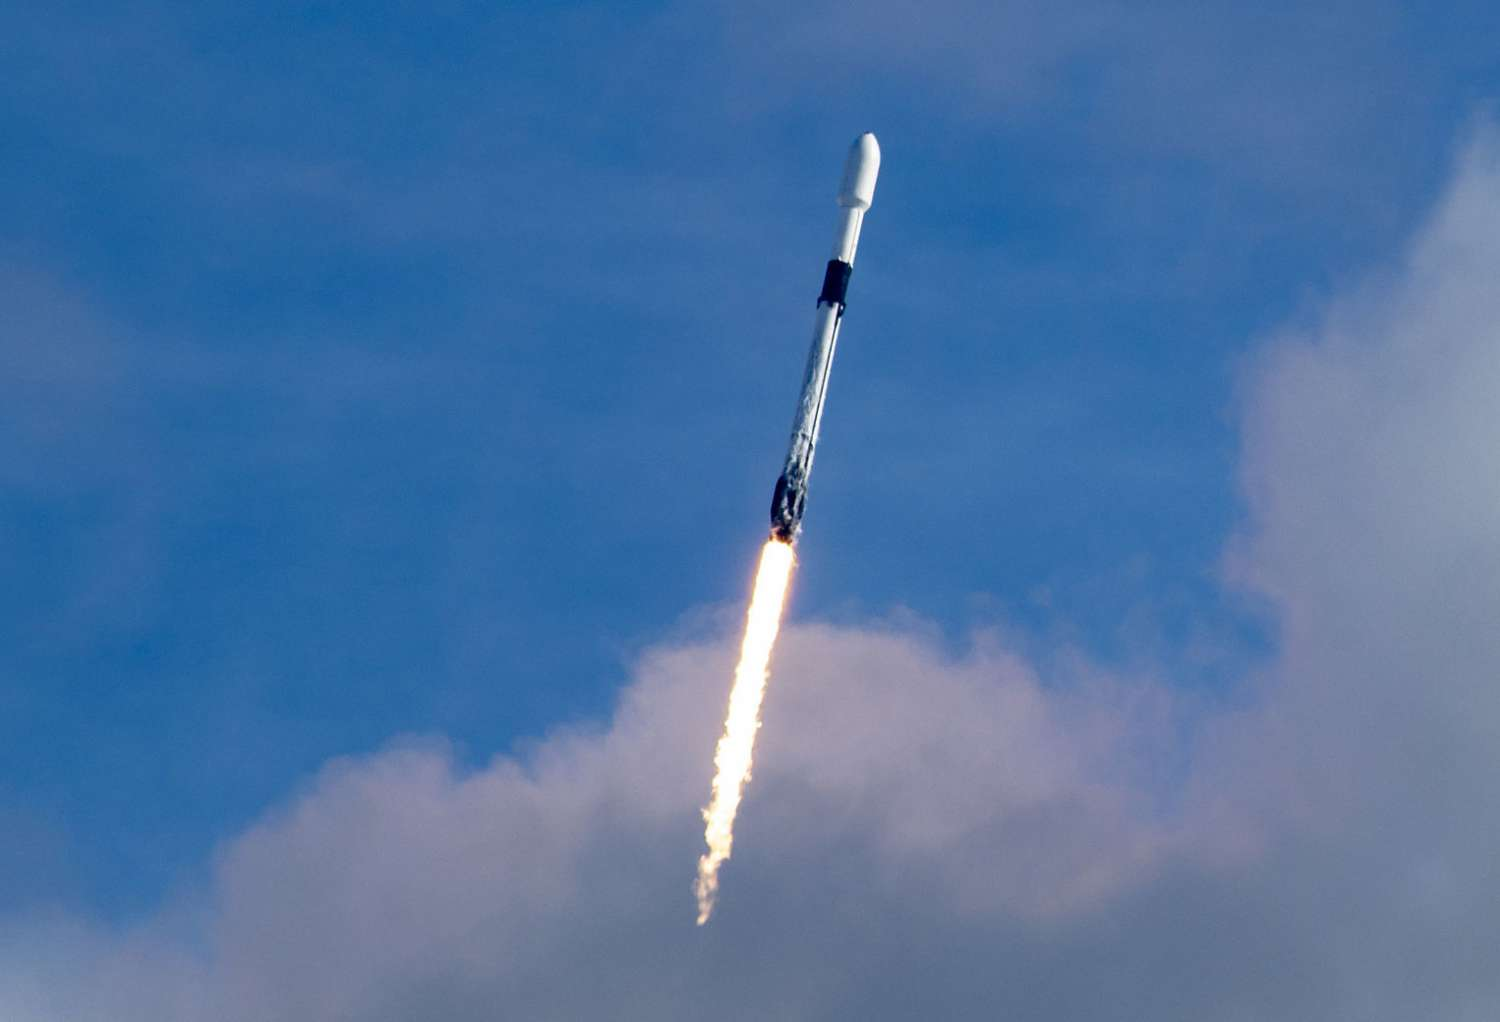 Un Falcon 9 da record: 143 satelliti in un colpo solo!